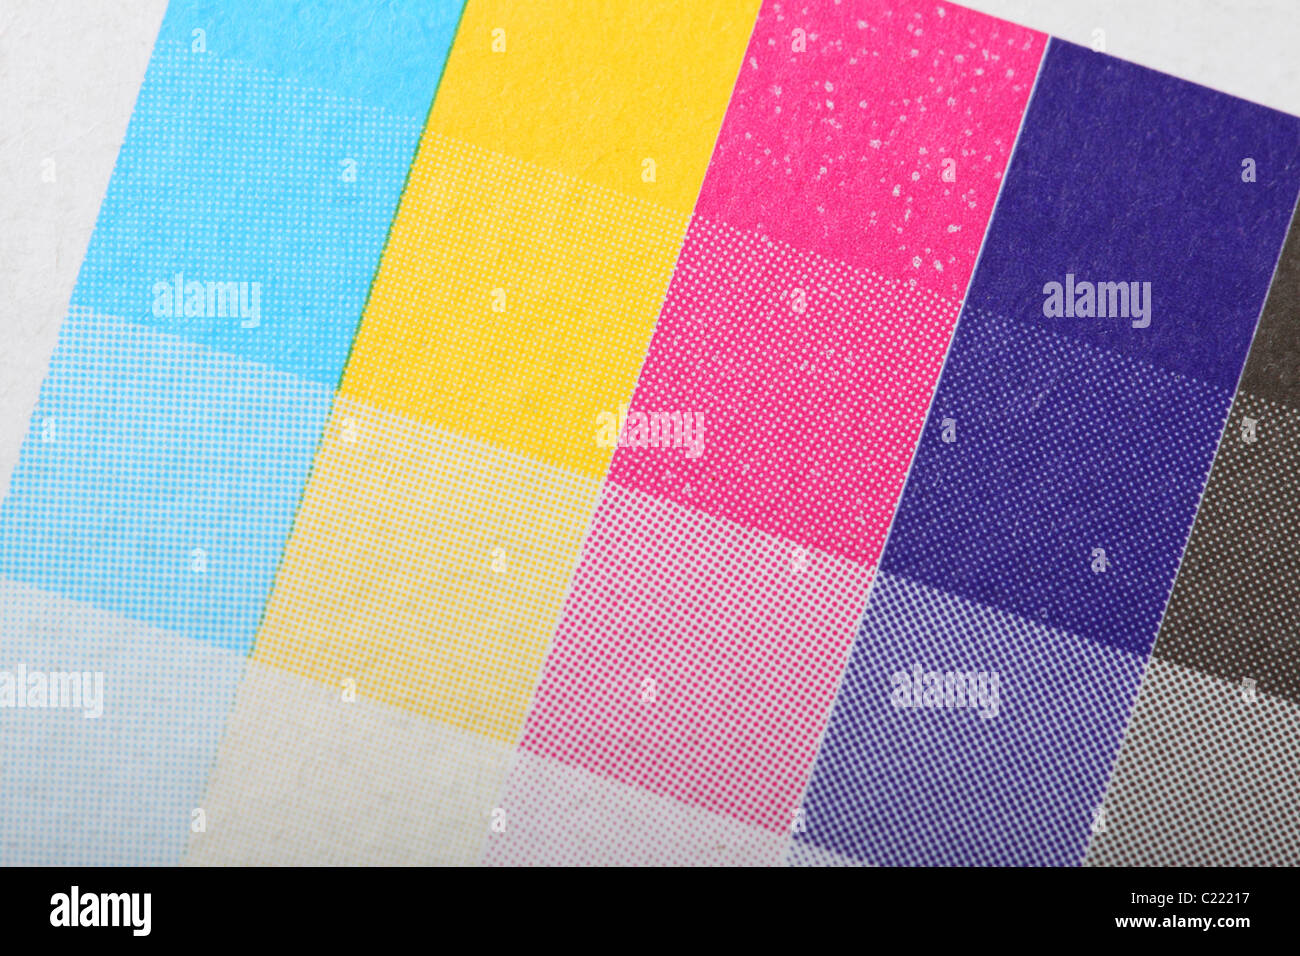 Color printing test - Printers Printing Cmyk Colour Test Print On Packaging Four 4 Color Processing Printing